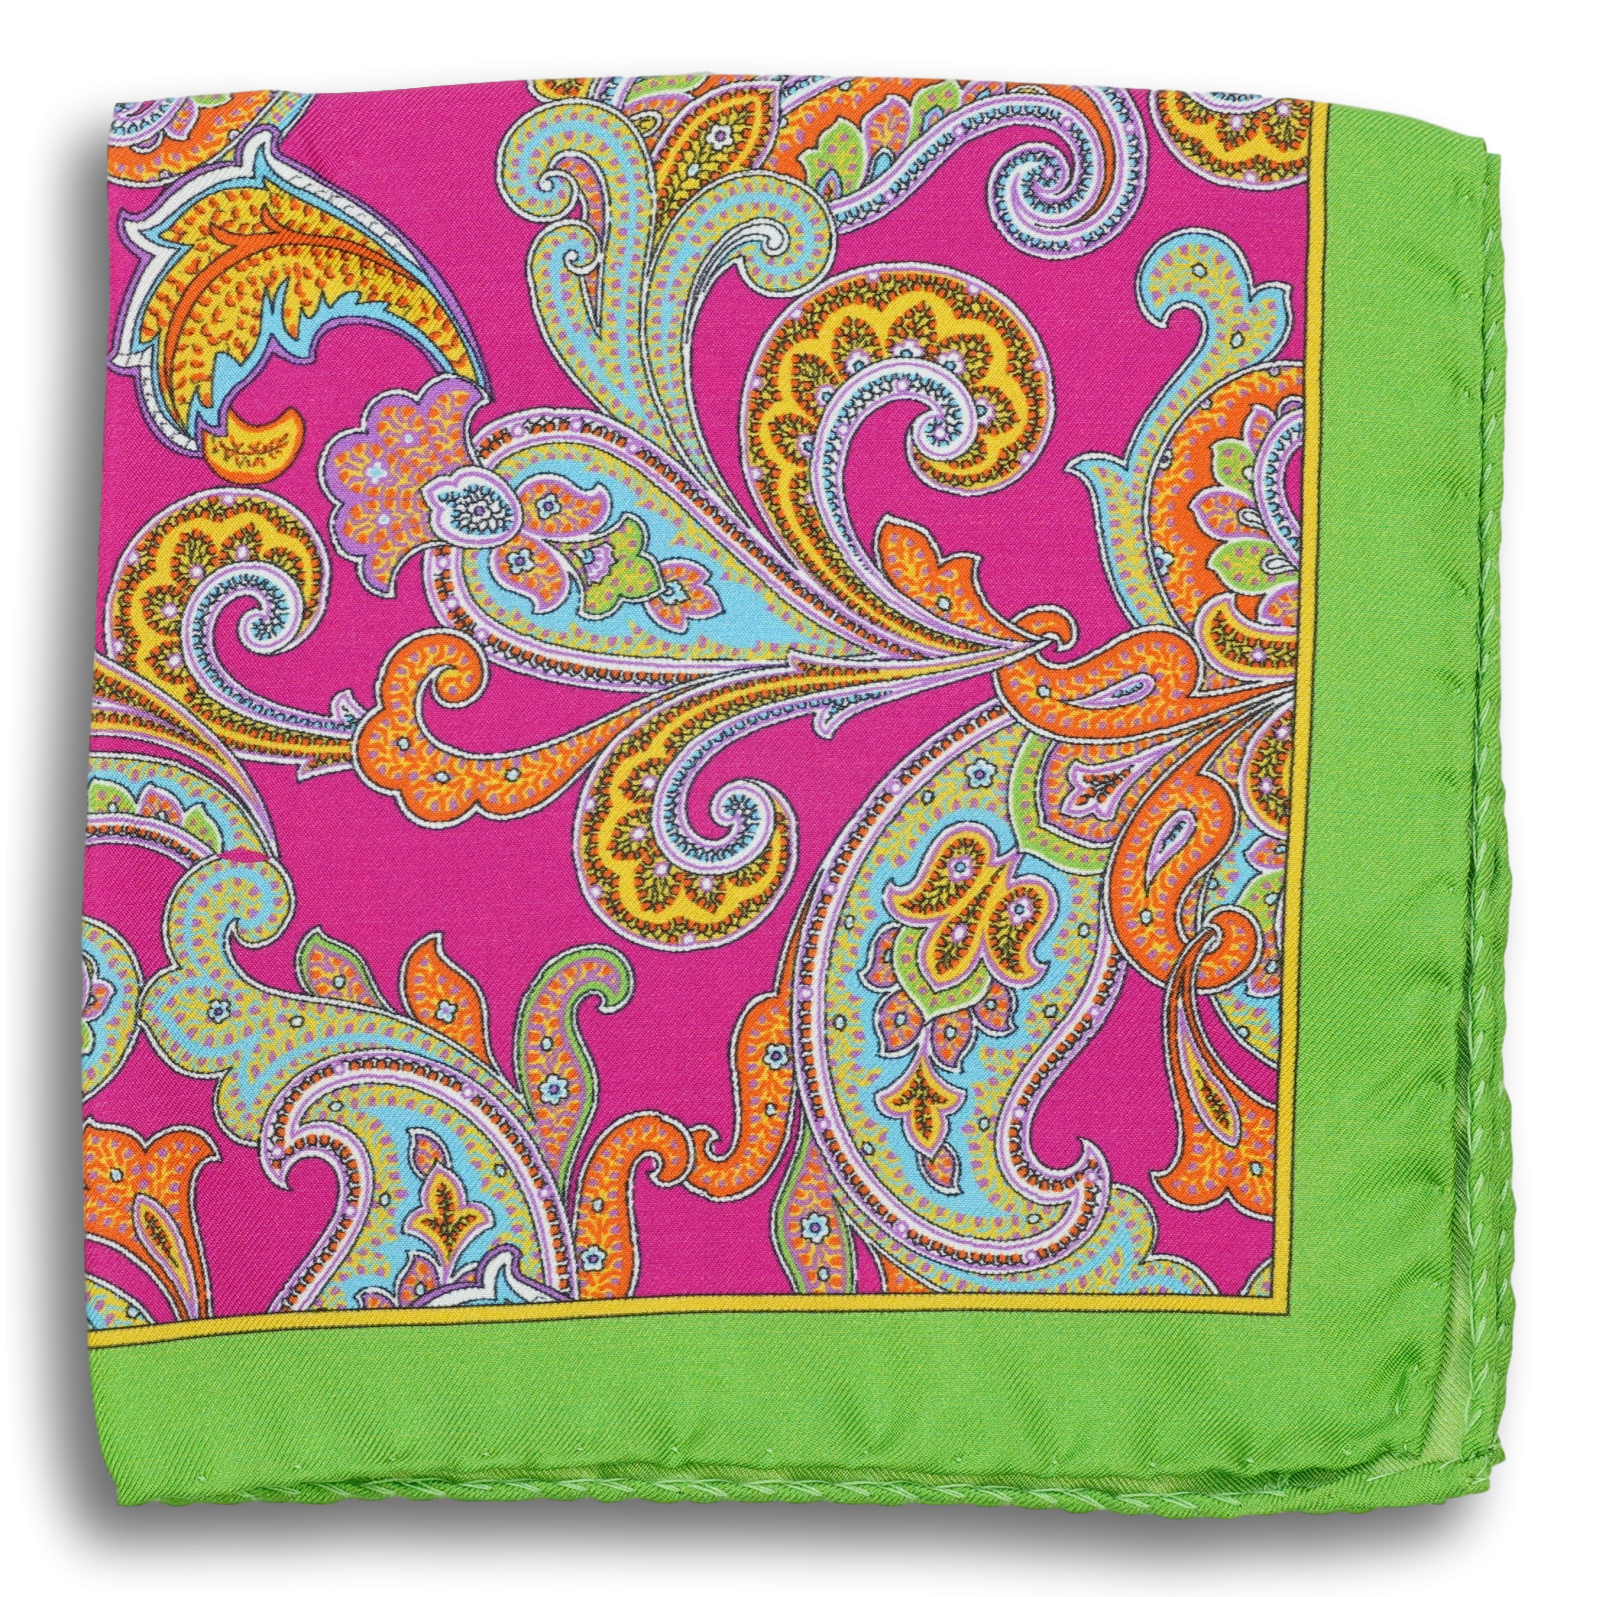 Multicolored Paisley Patterned Silk Pocket Square